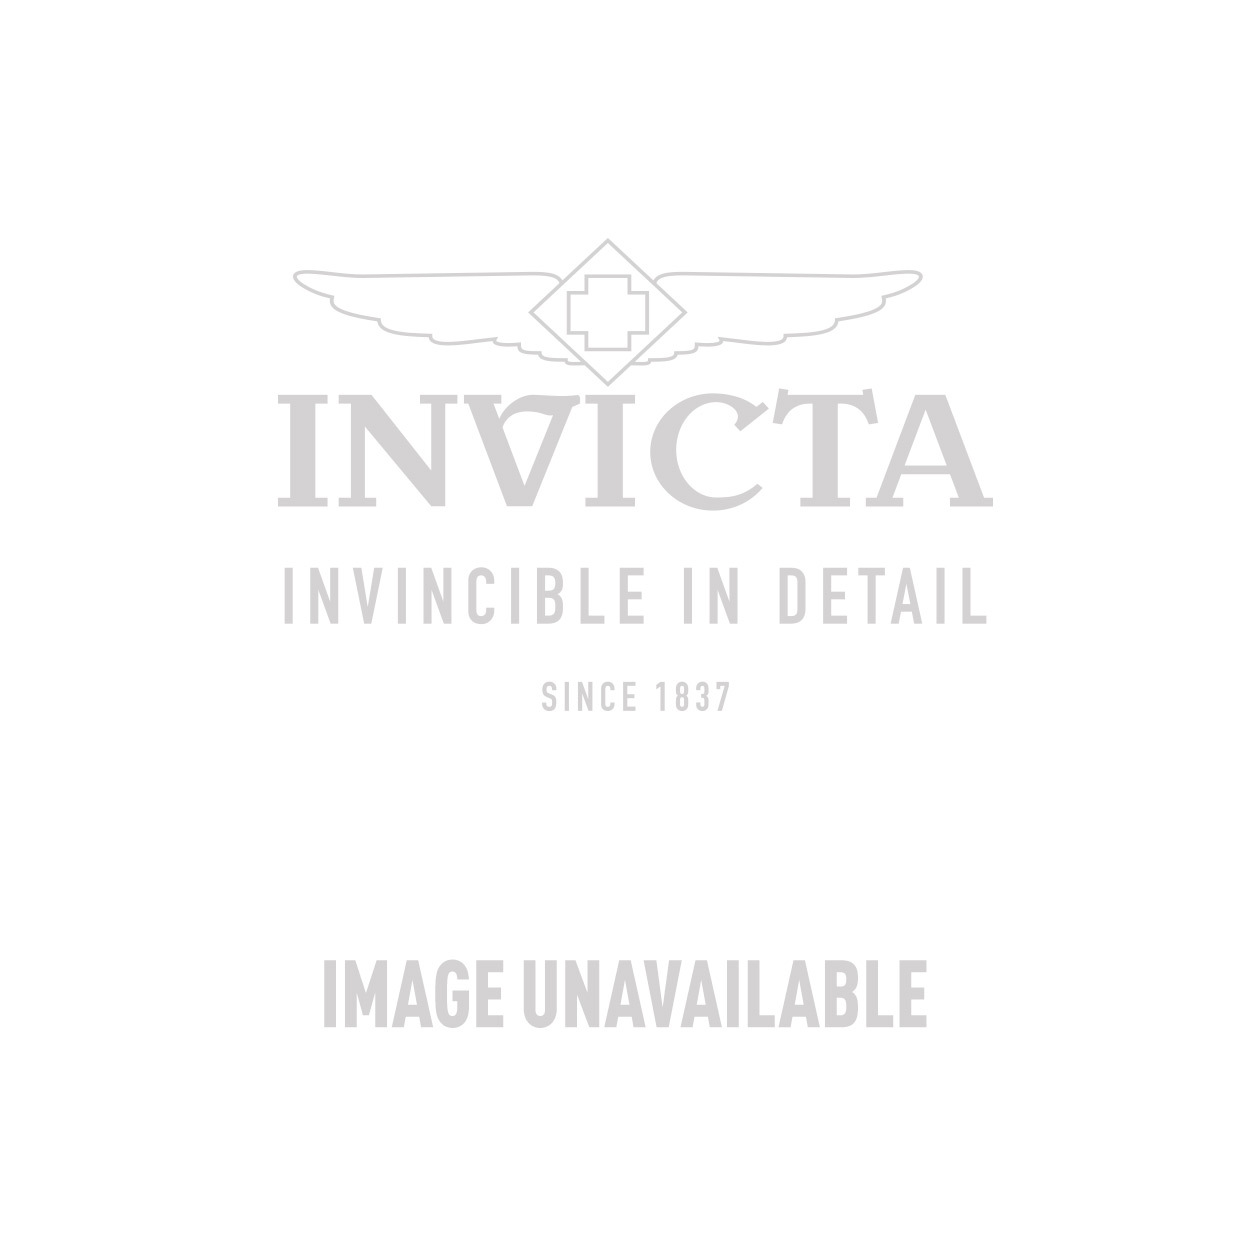 Invicta Pro Diver Quartz Watch - Stainless Steel case Stainless Steel band - Model 90190